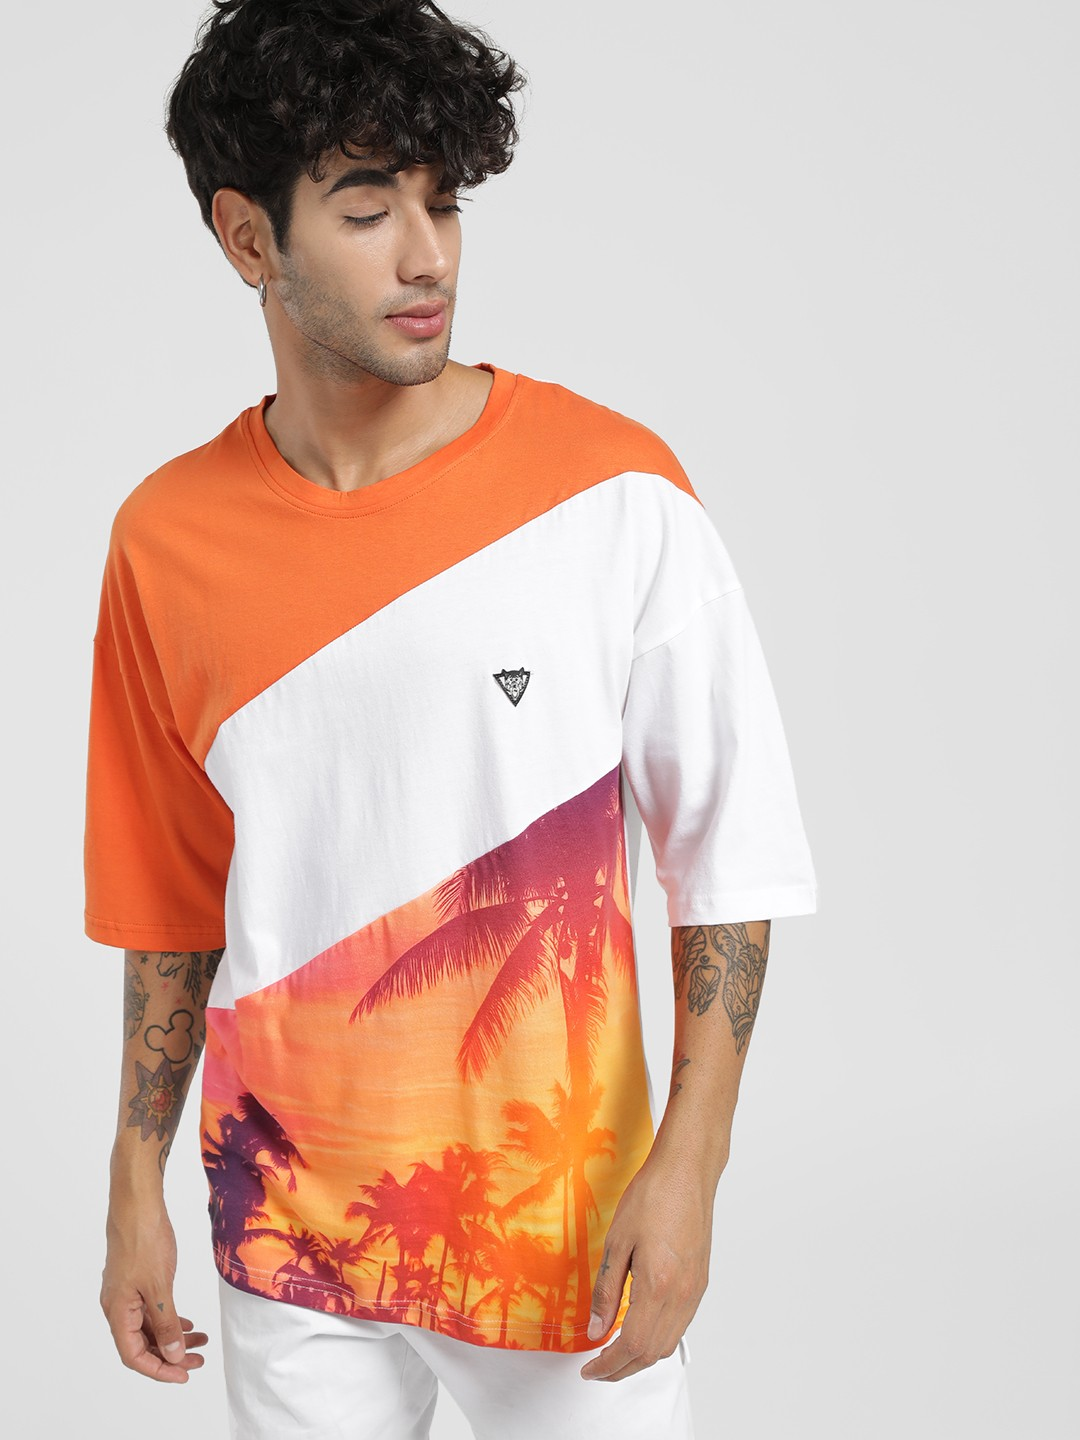 Styx & Stones Orange Graphic Tropical Print Boxy T-Shirt 1